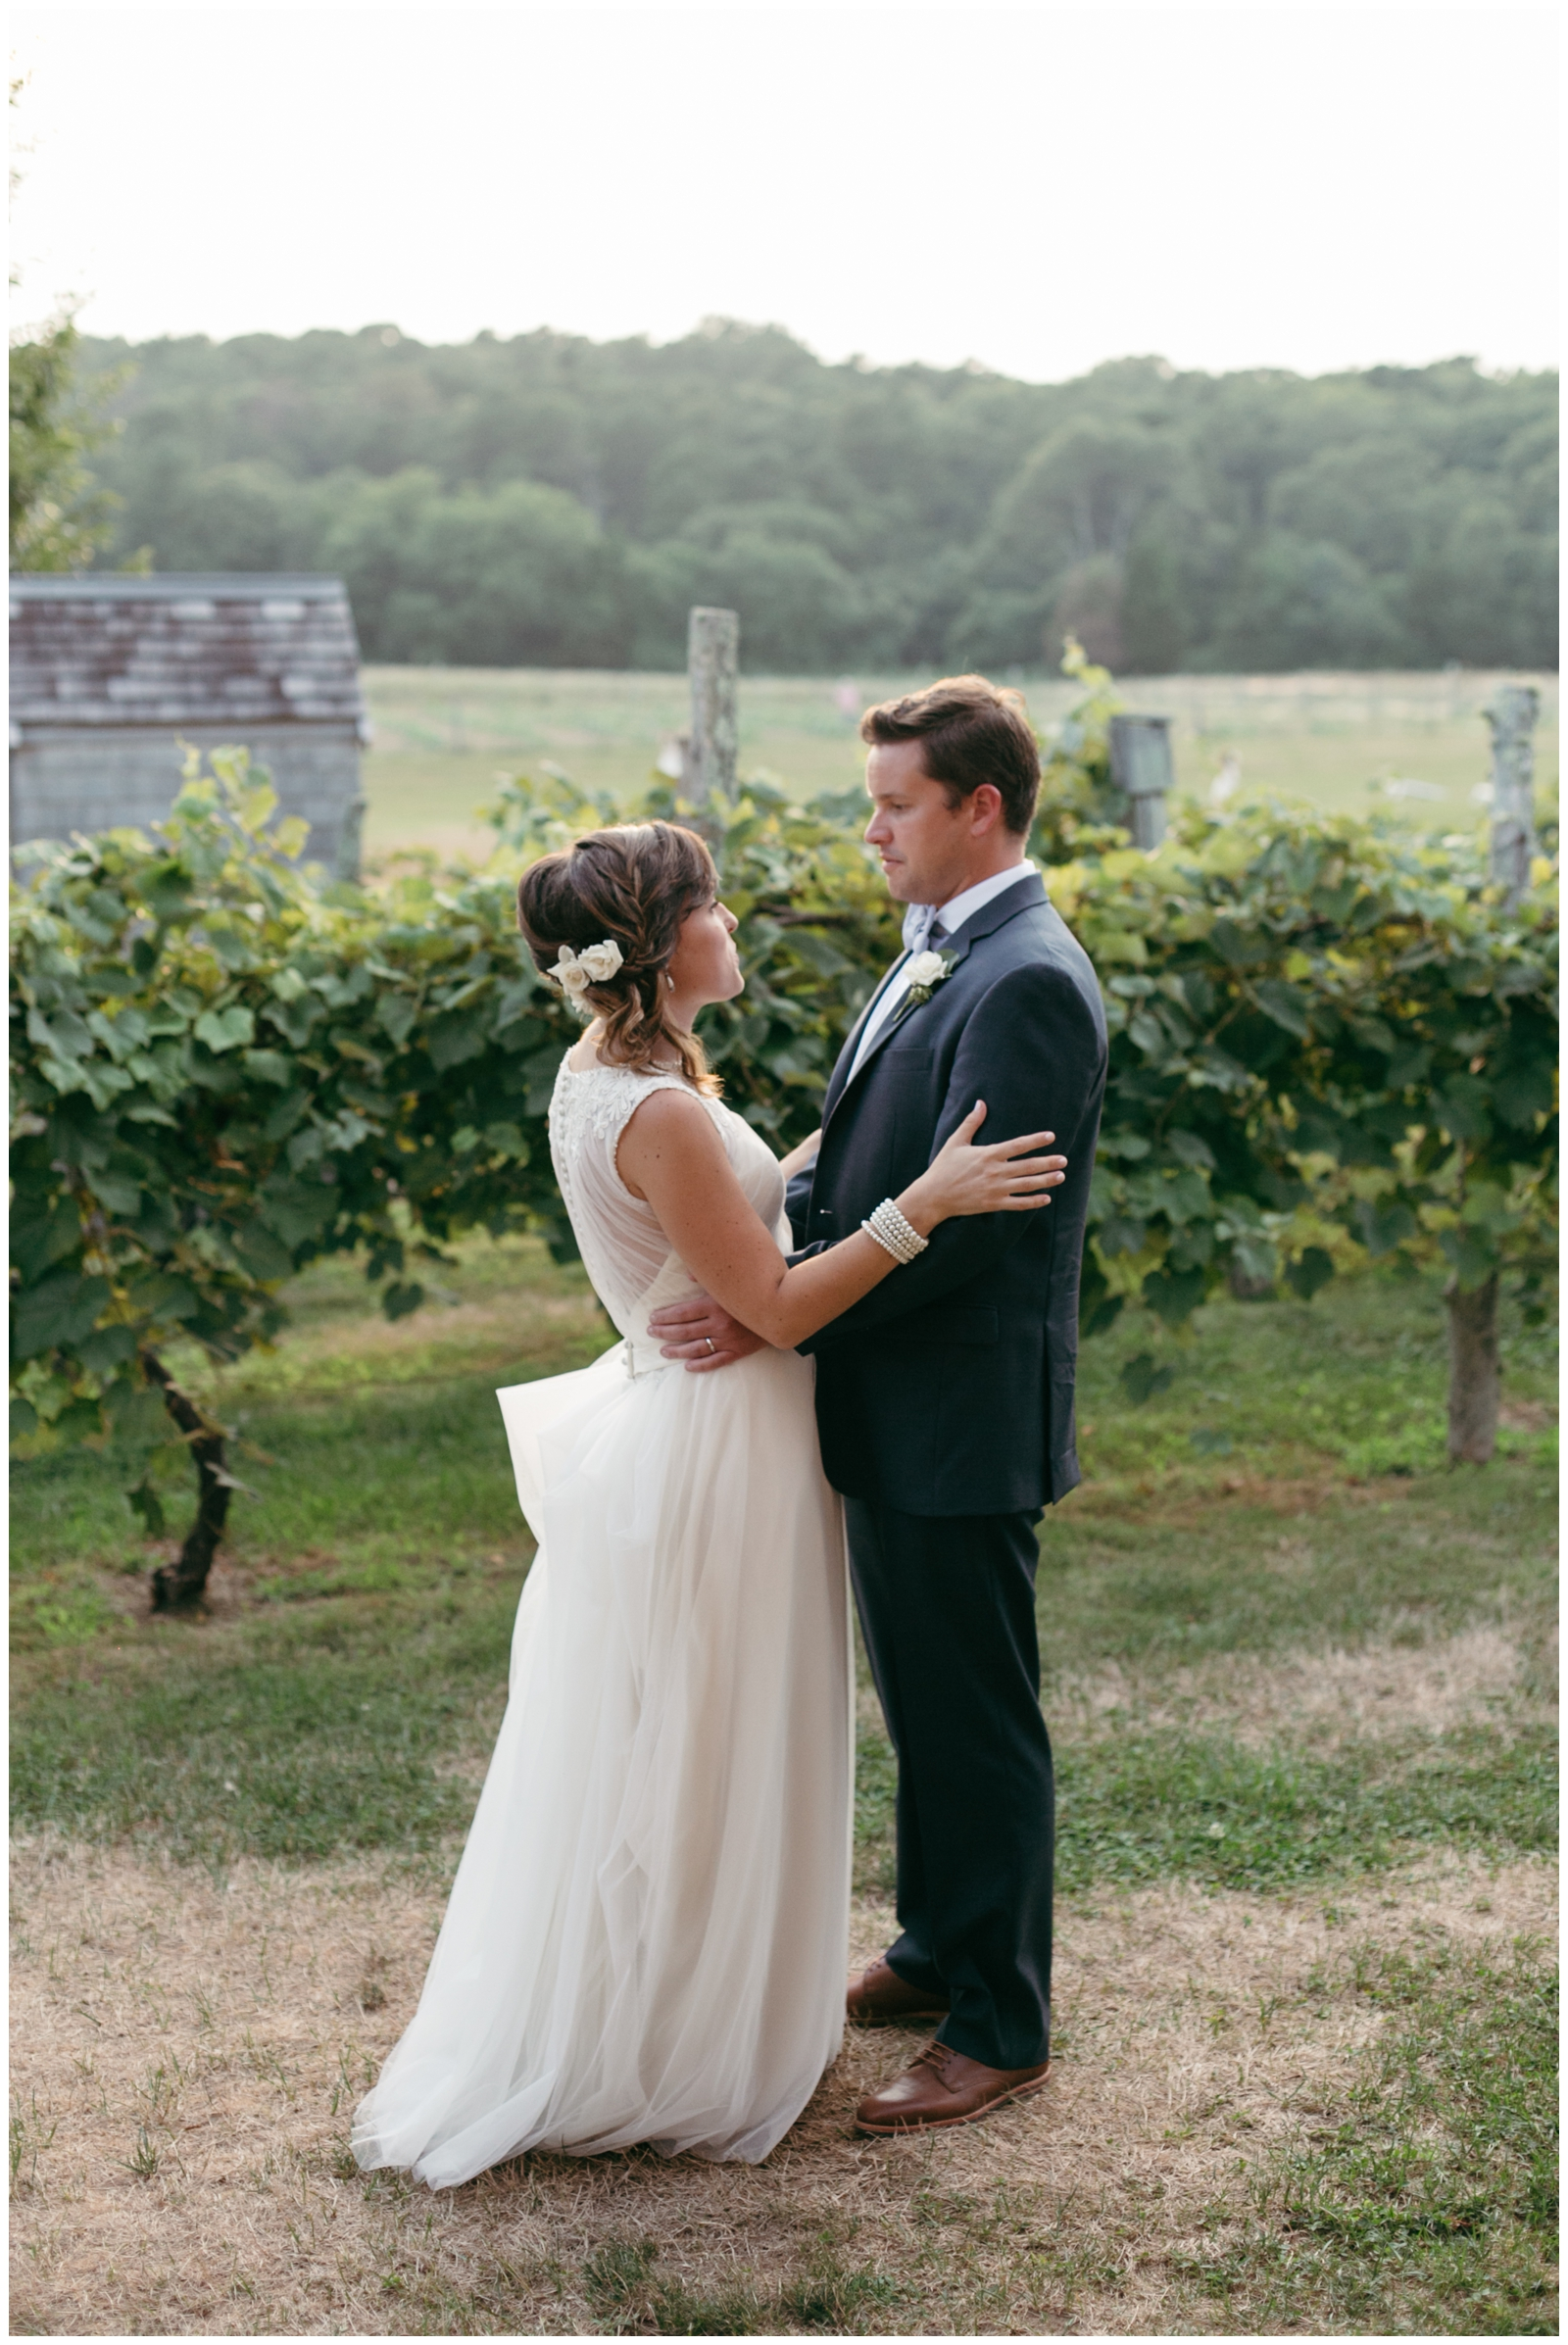 Bourne-Farm-Wedding-Cape-Cod-wedding-photographer-Bailey-Q-Photo-055.jpg